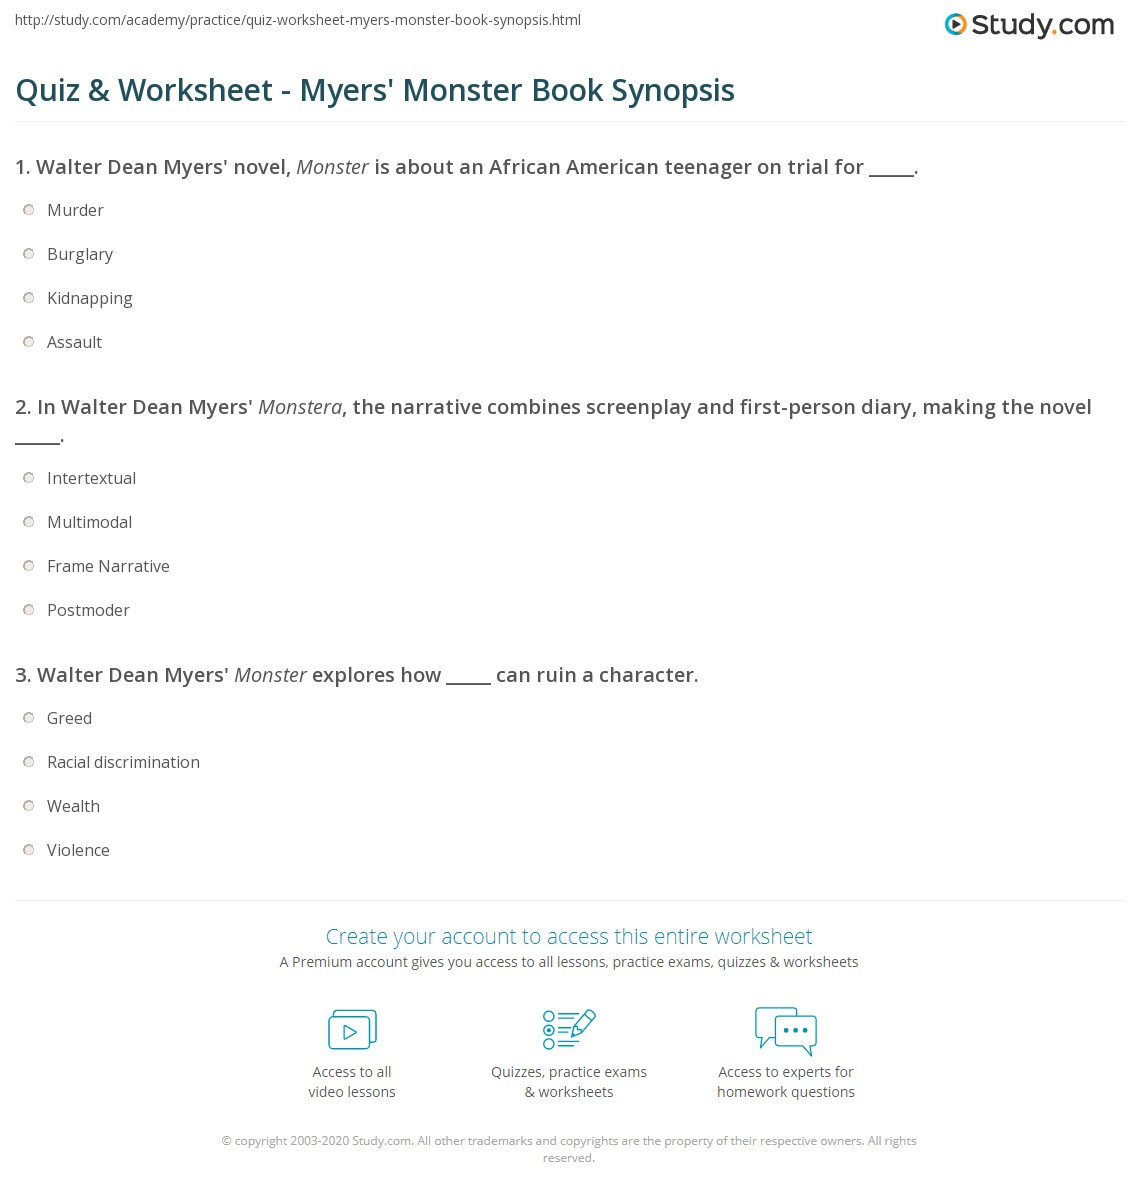 quiz worksheet myers monster book synopsis com print monster by walter dean myers summary worksheet